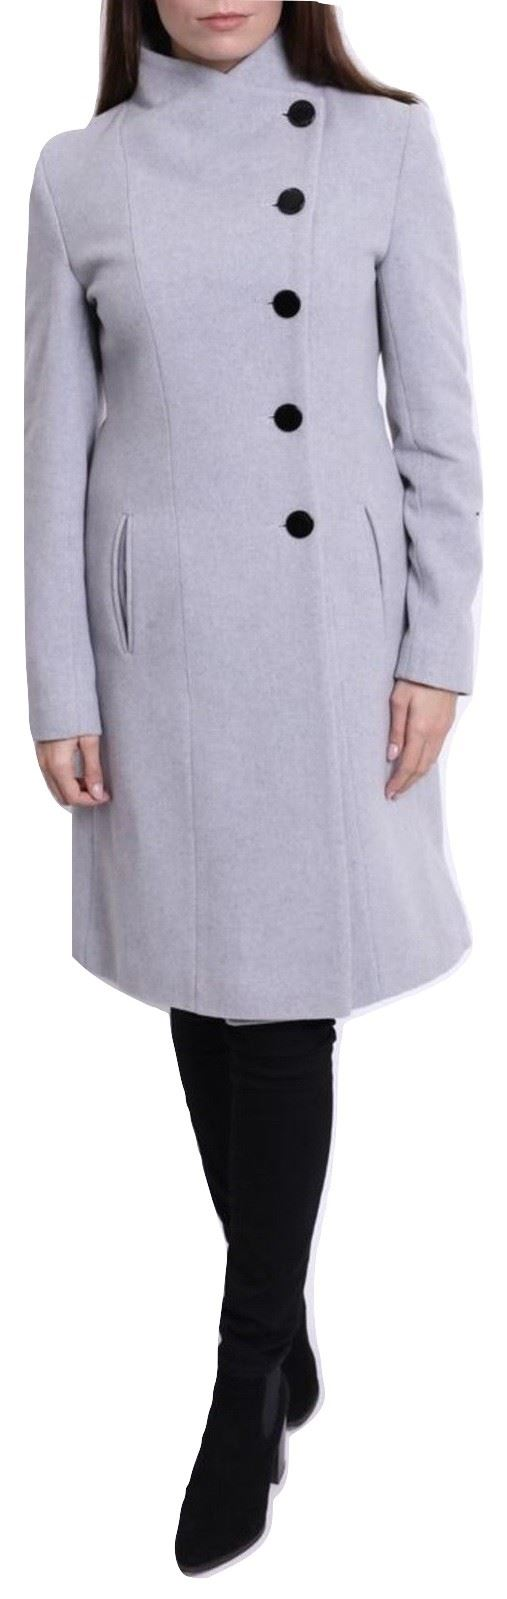 De-La-Creme-Womens-Funnel-Neck-Wool-amp-Cashmere-Blend-Keep-It-Simple-Coat thumbnail 17